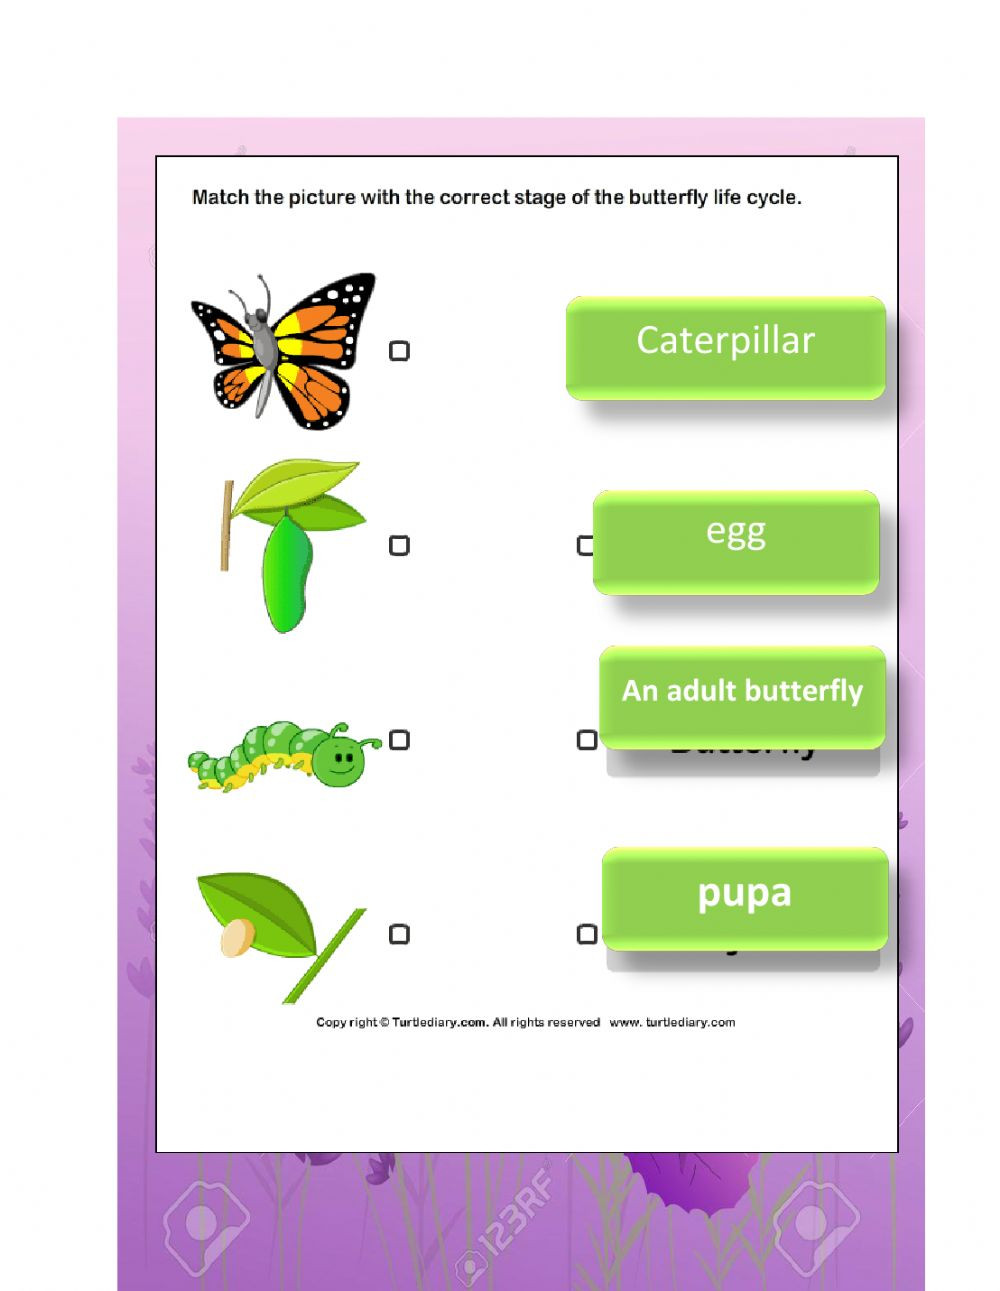 Butterfly Life Cycle Worksheet 2 the Life Cycle Of butterfly Interactive Worksheet